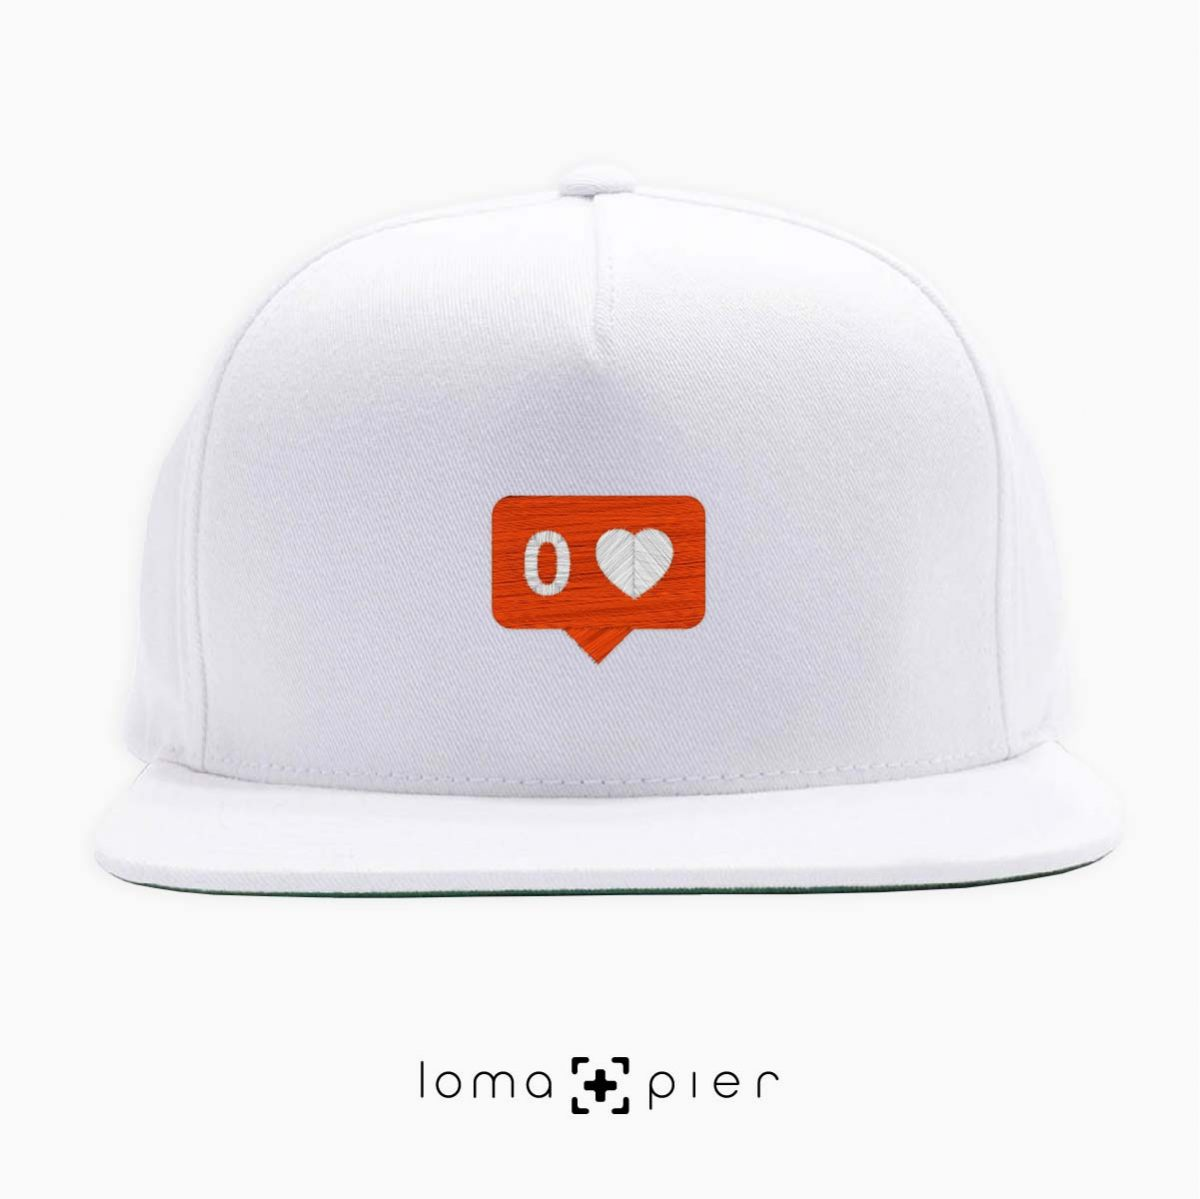 NO LOVE snapback hat in white by lomapier hat store